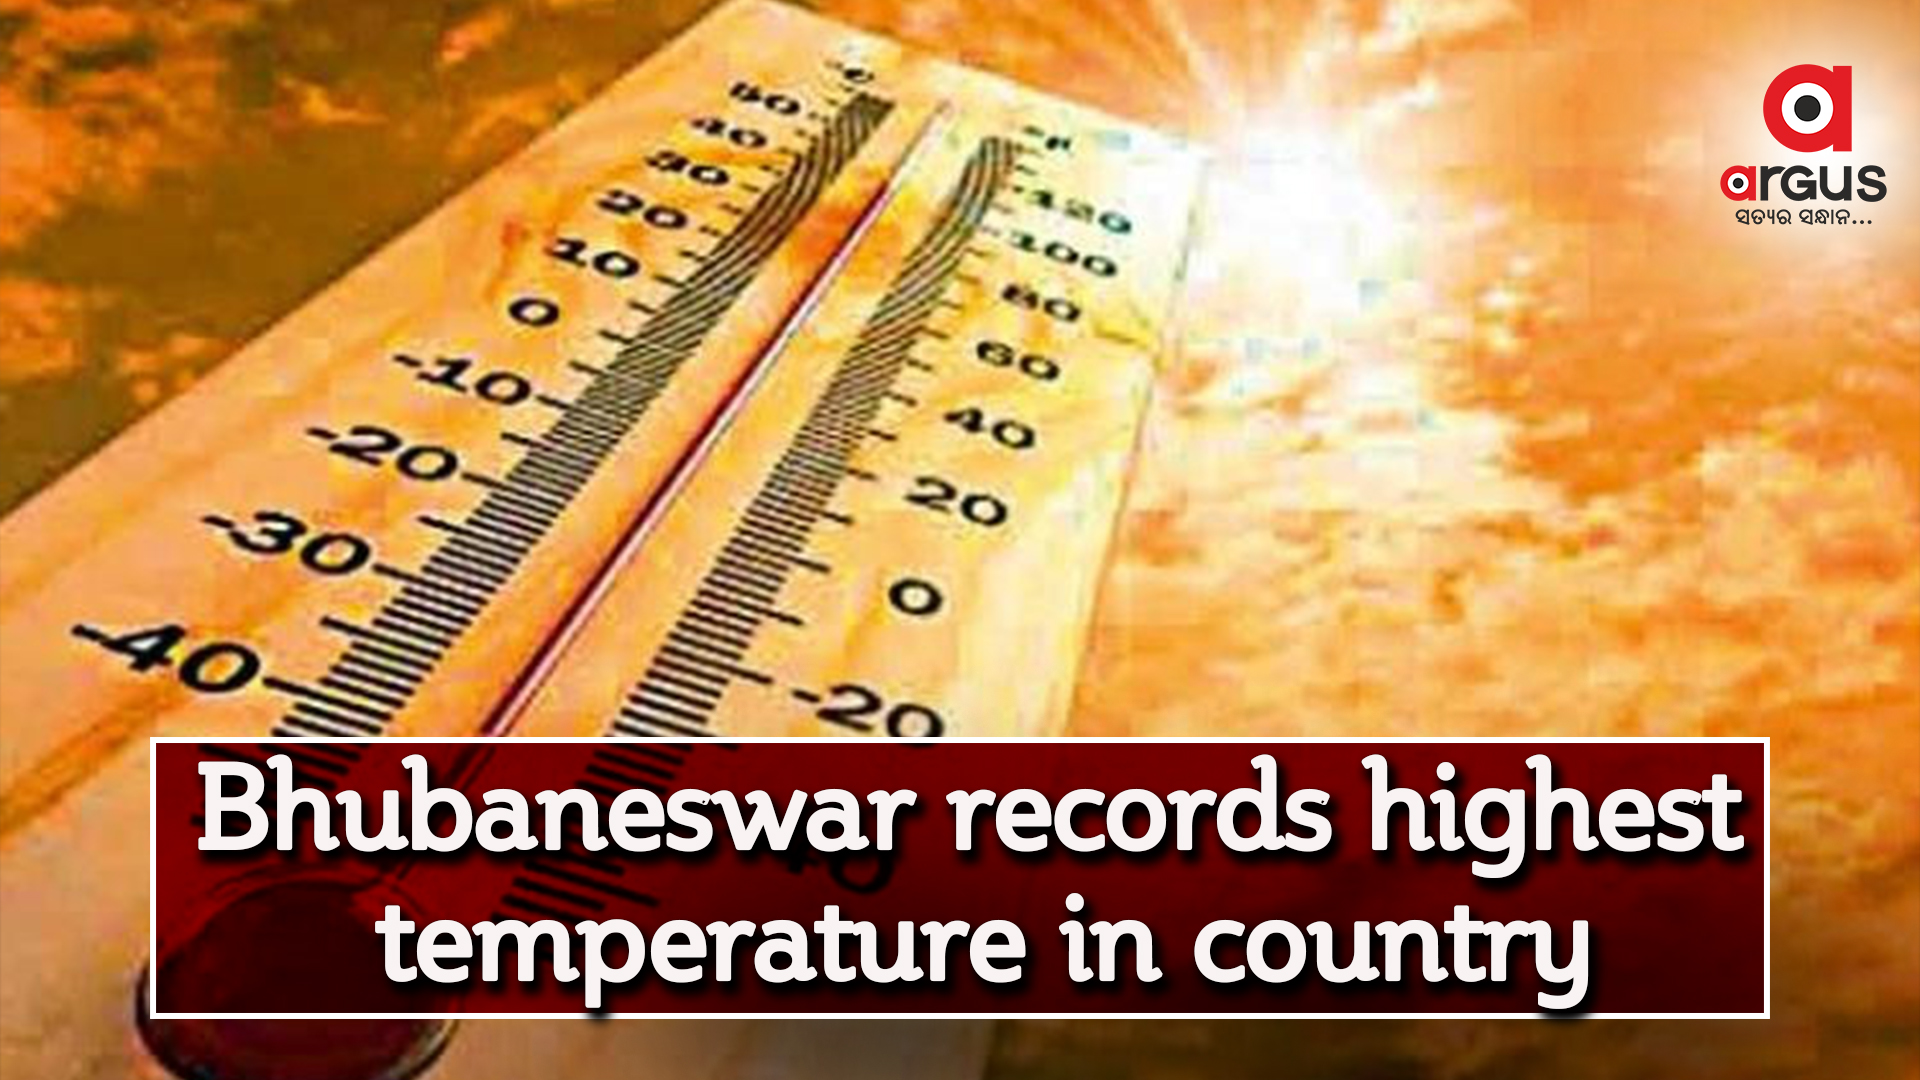 Bhubaneswar records highest temperature in country